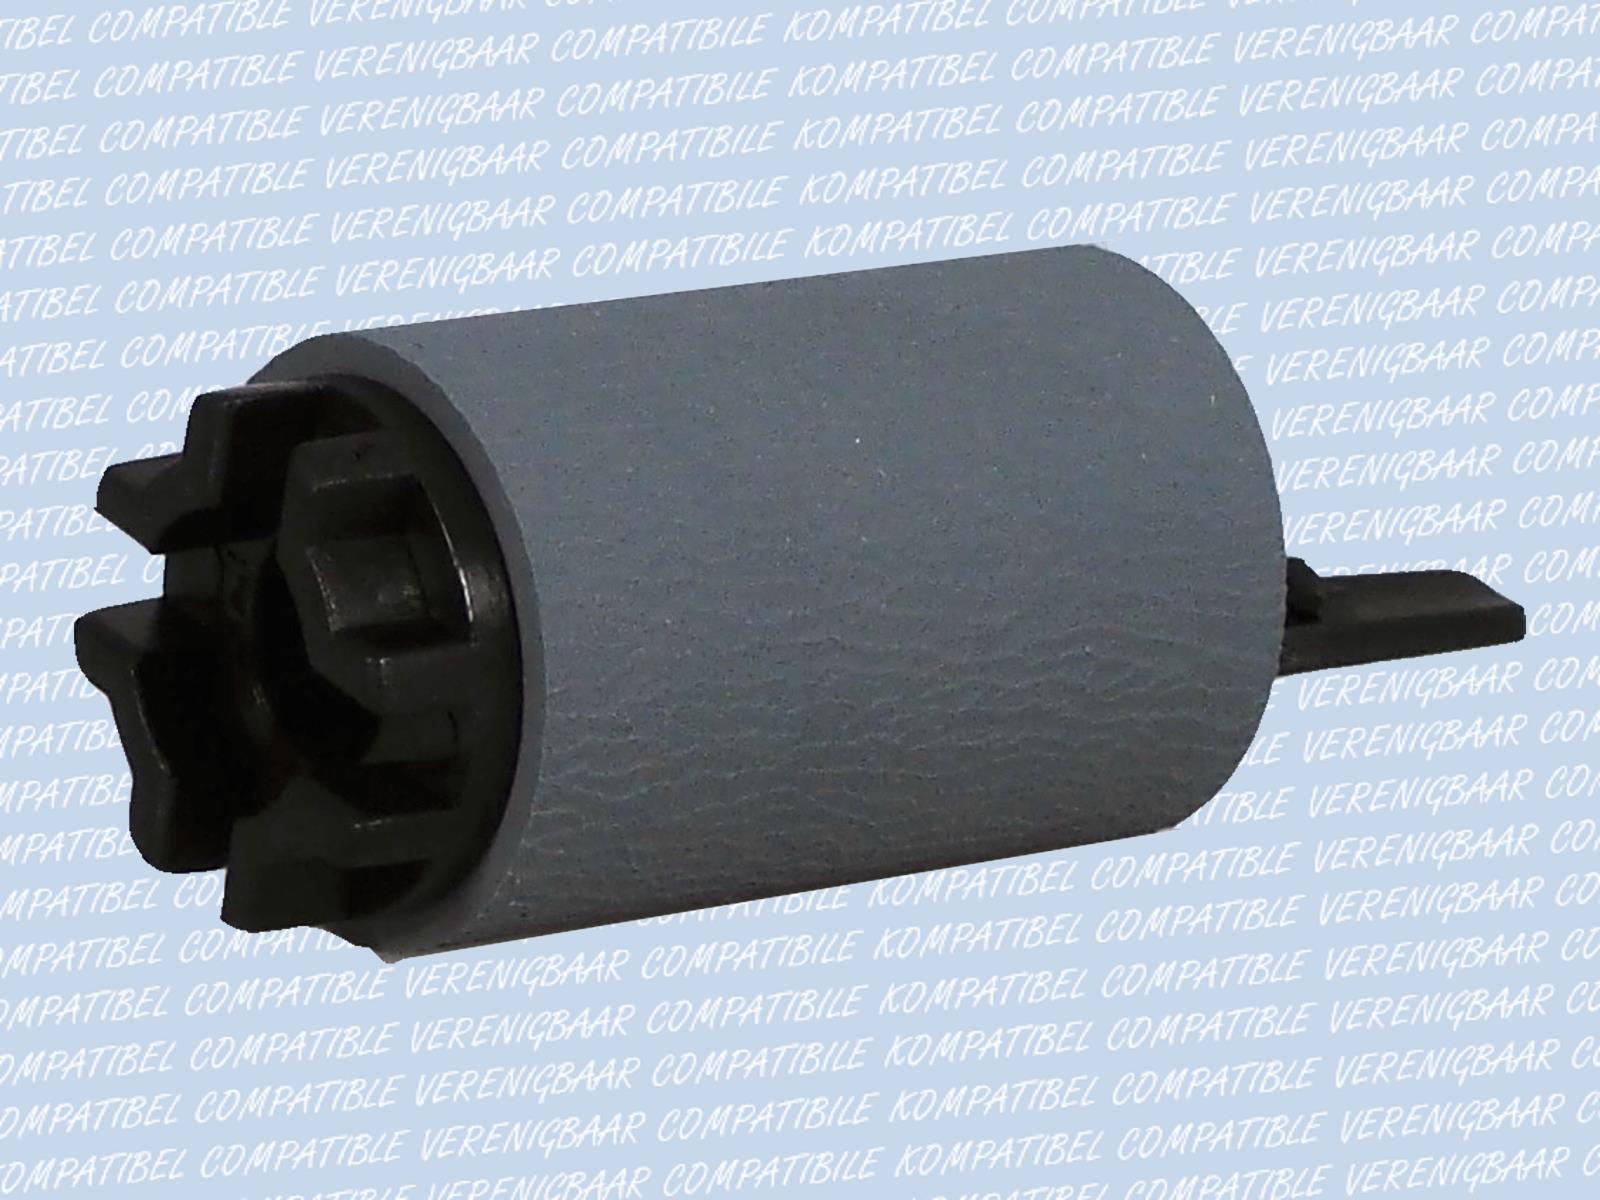 Compatible Paper Feed Roller Typ: 302ND94340 for Triumph-Adler 2506ci /  3206ci / 4006ci / 4056i / 5006ci / 5056i / 6006ci / 6056i